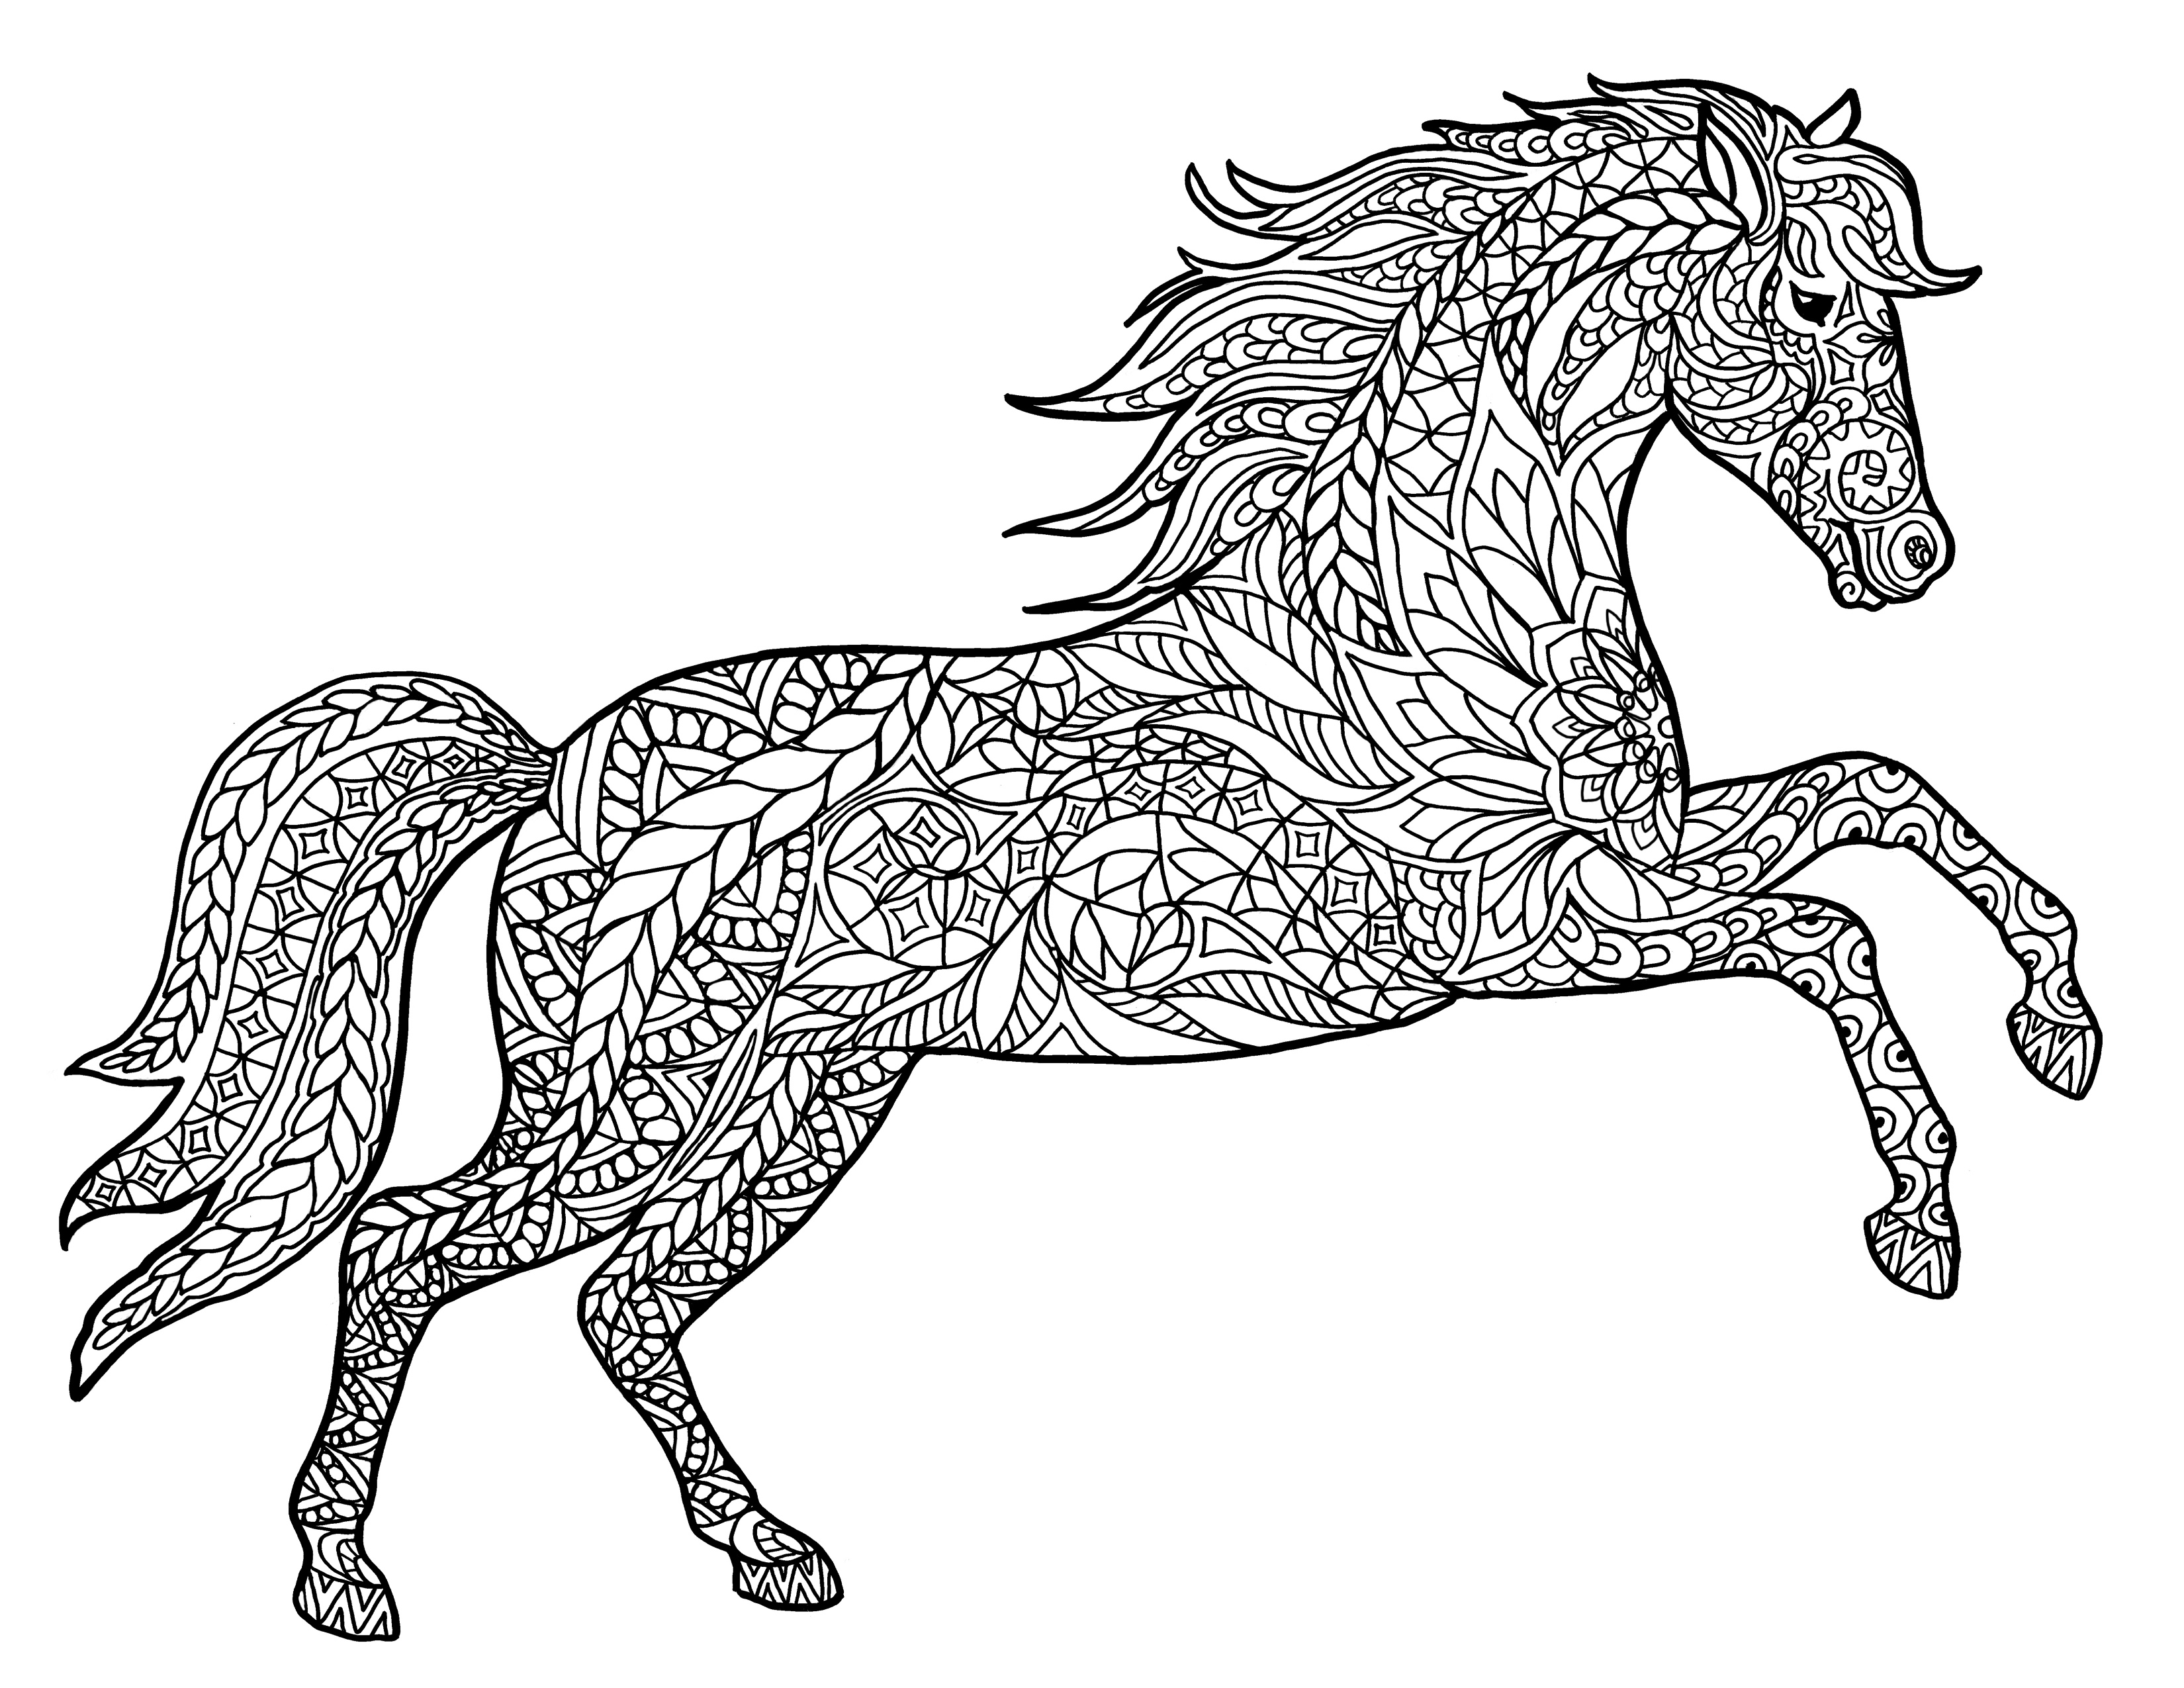 horse coloring pages for kids adult coloring pages animals best coloring pages for kids kids horse coloring pages for